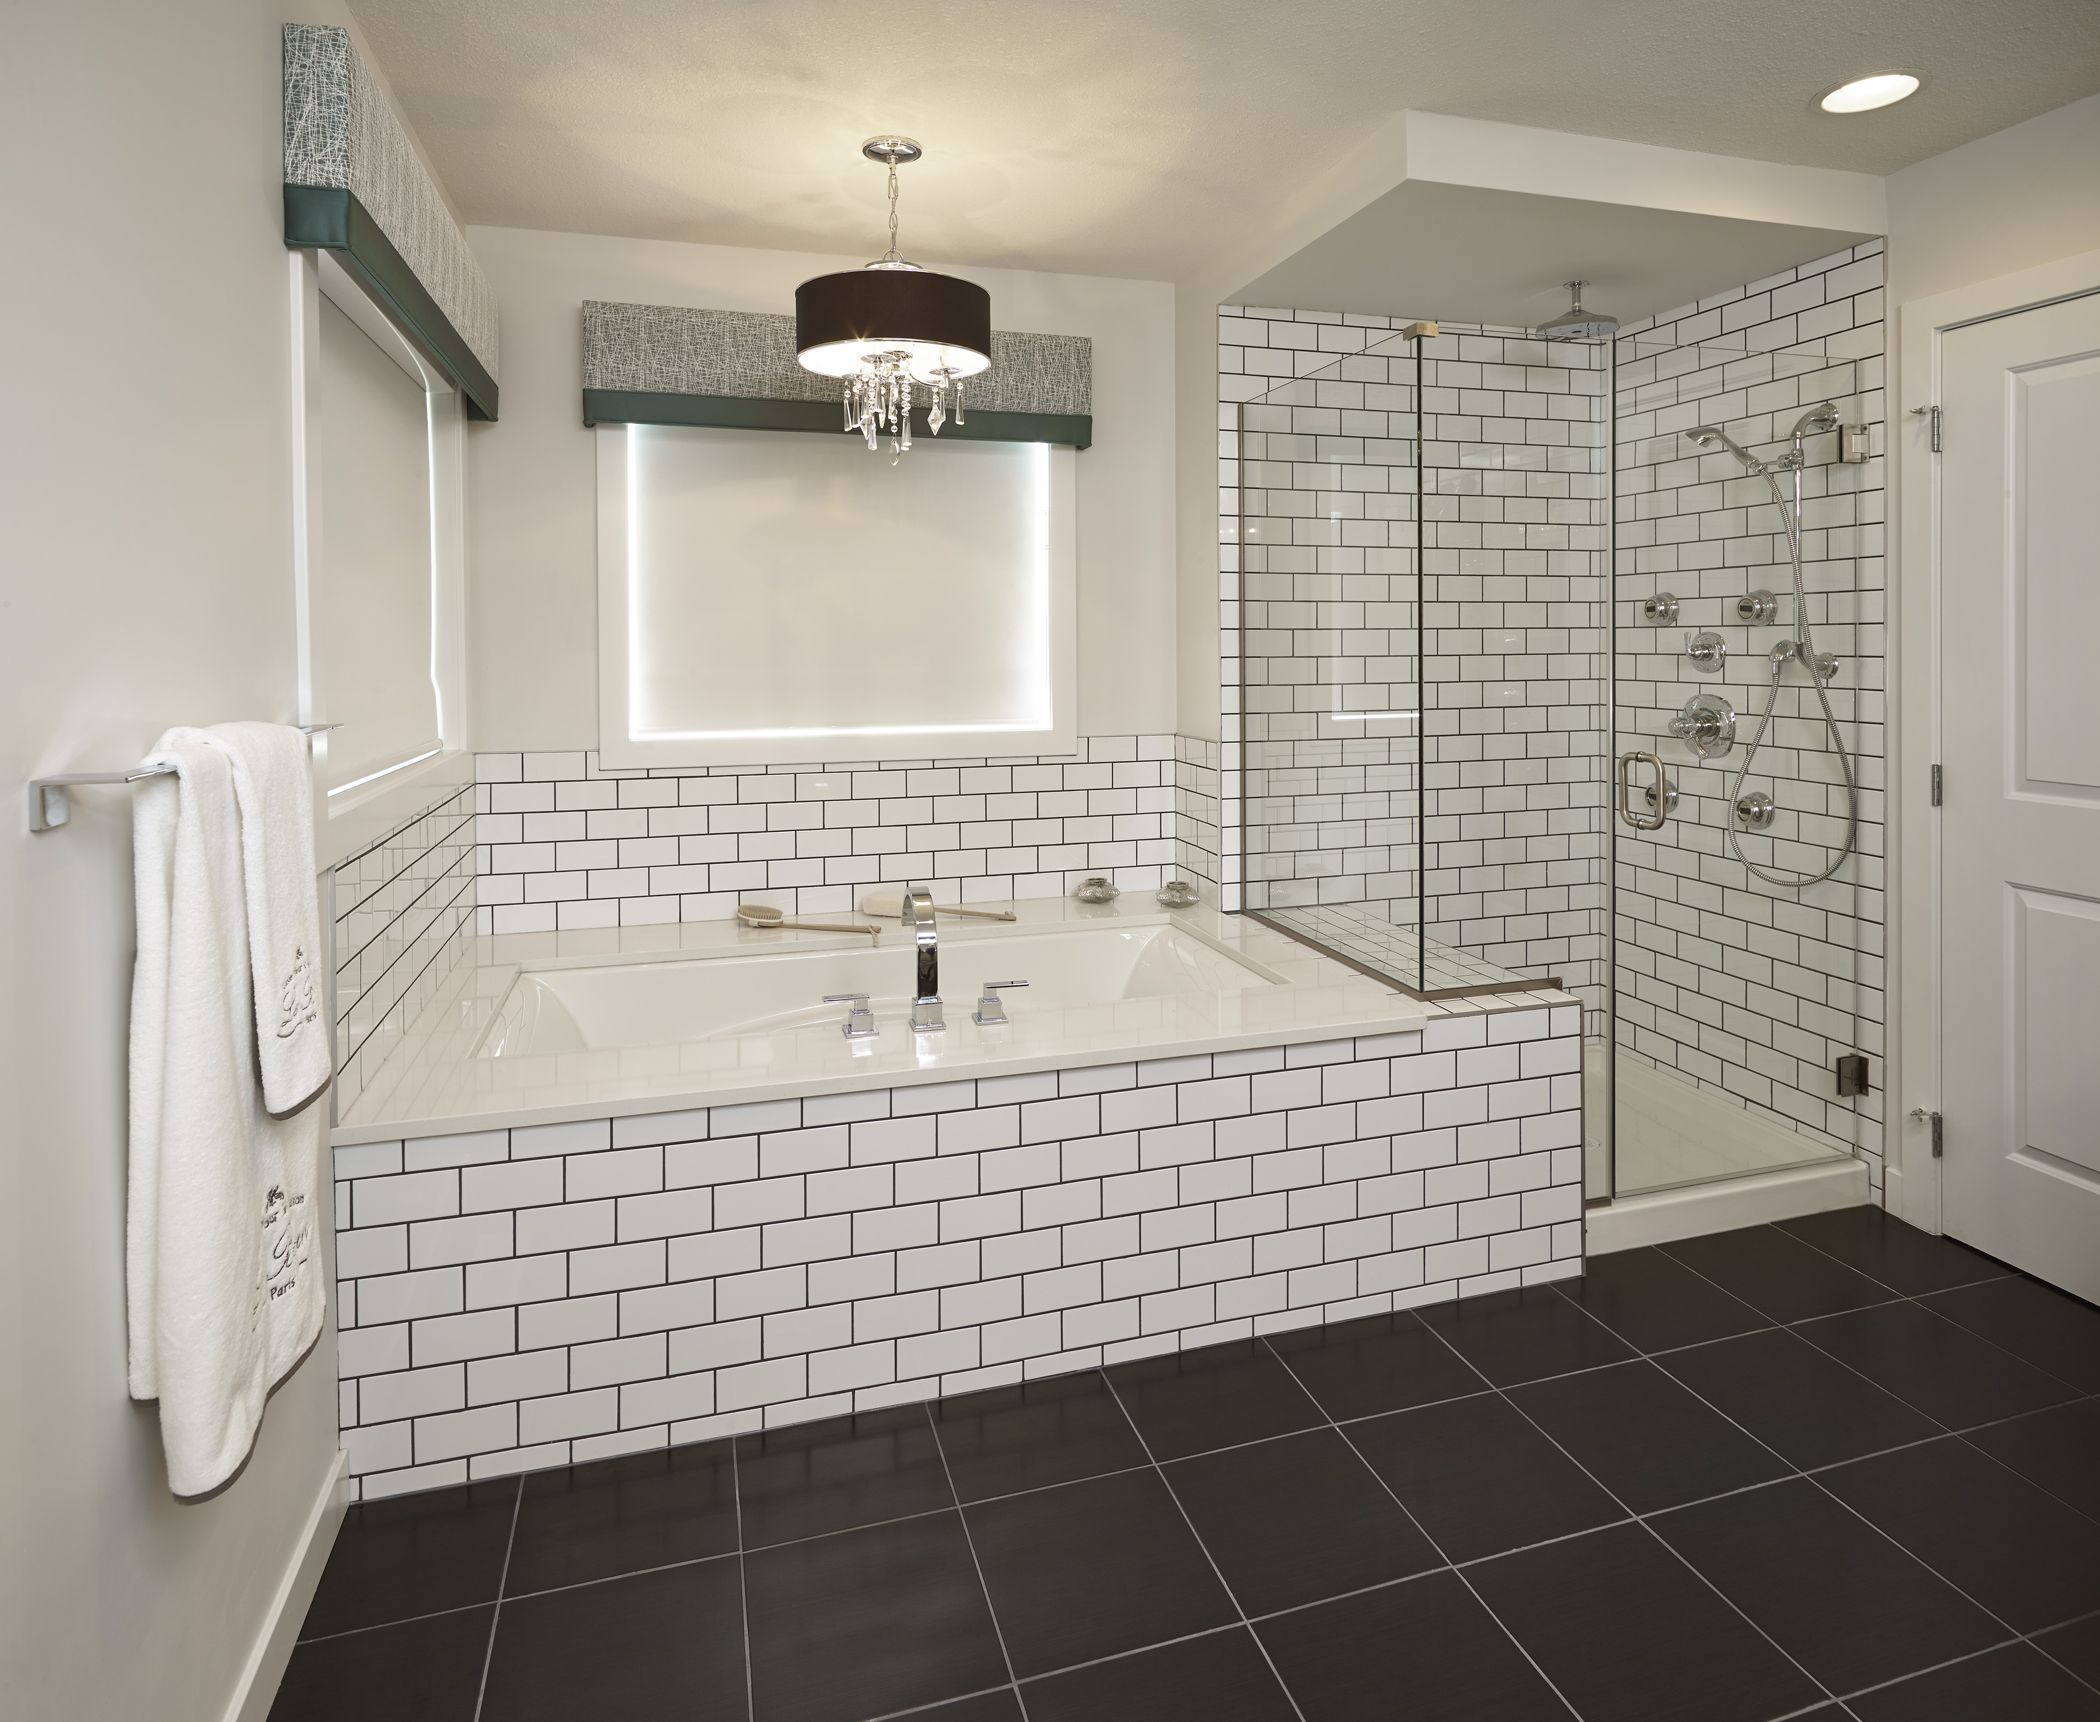 Crisp White Subway Tile Accented With Dark Grout Surrounds The Tub And Enclosed Shower White Subway Tile Shower White Bathroom Tiles White Subway Tile Bathroom